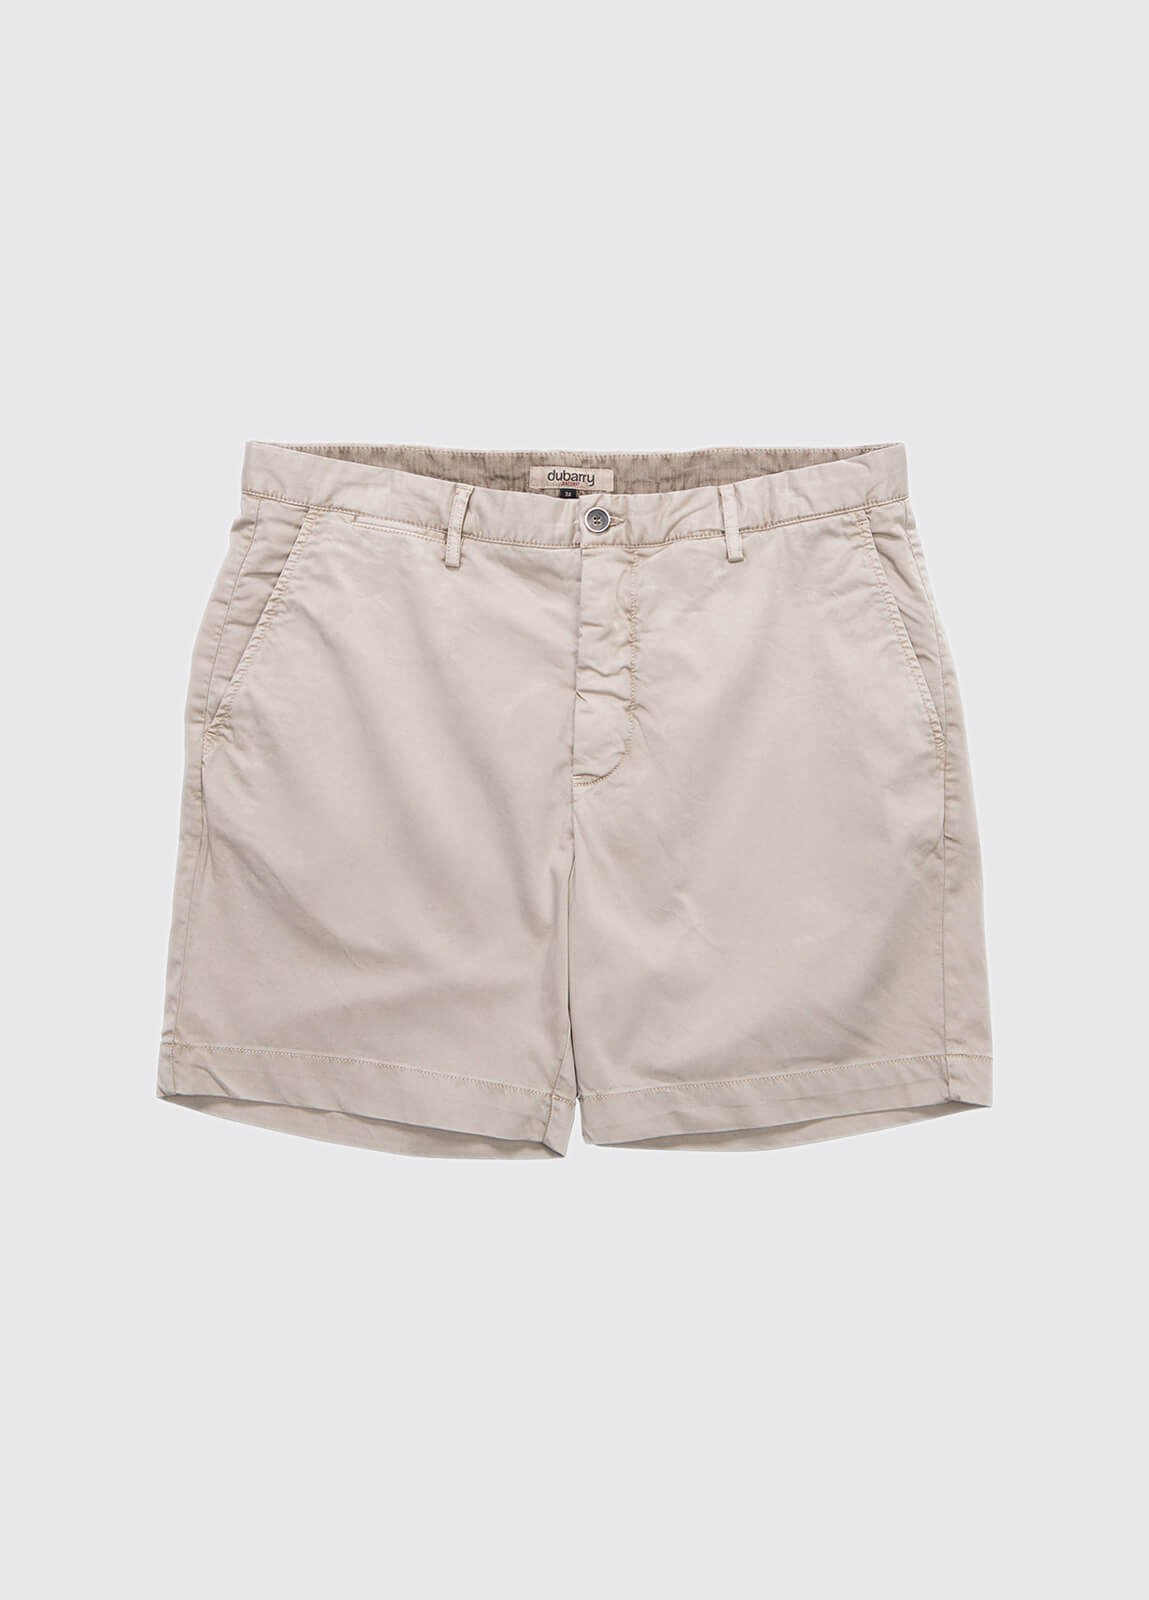 Glandore Men's Shorts - Tan